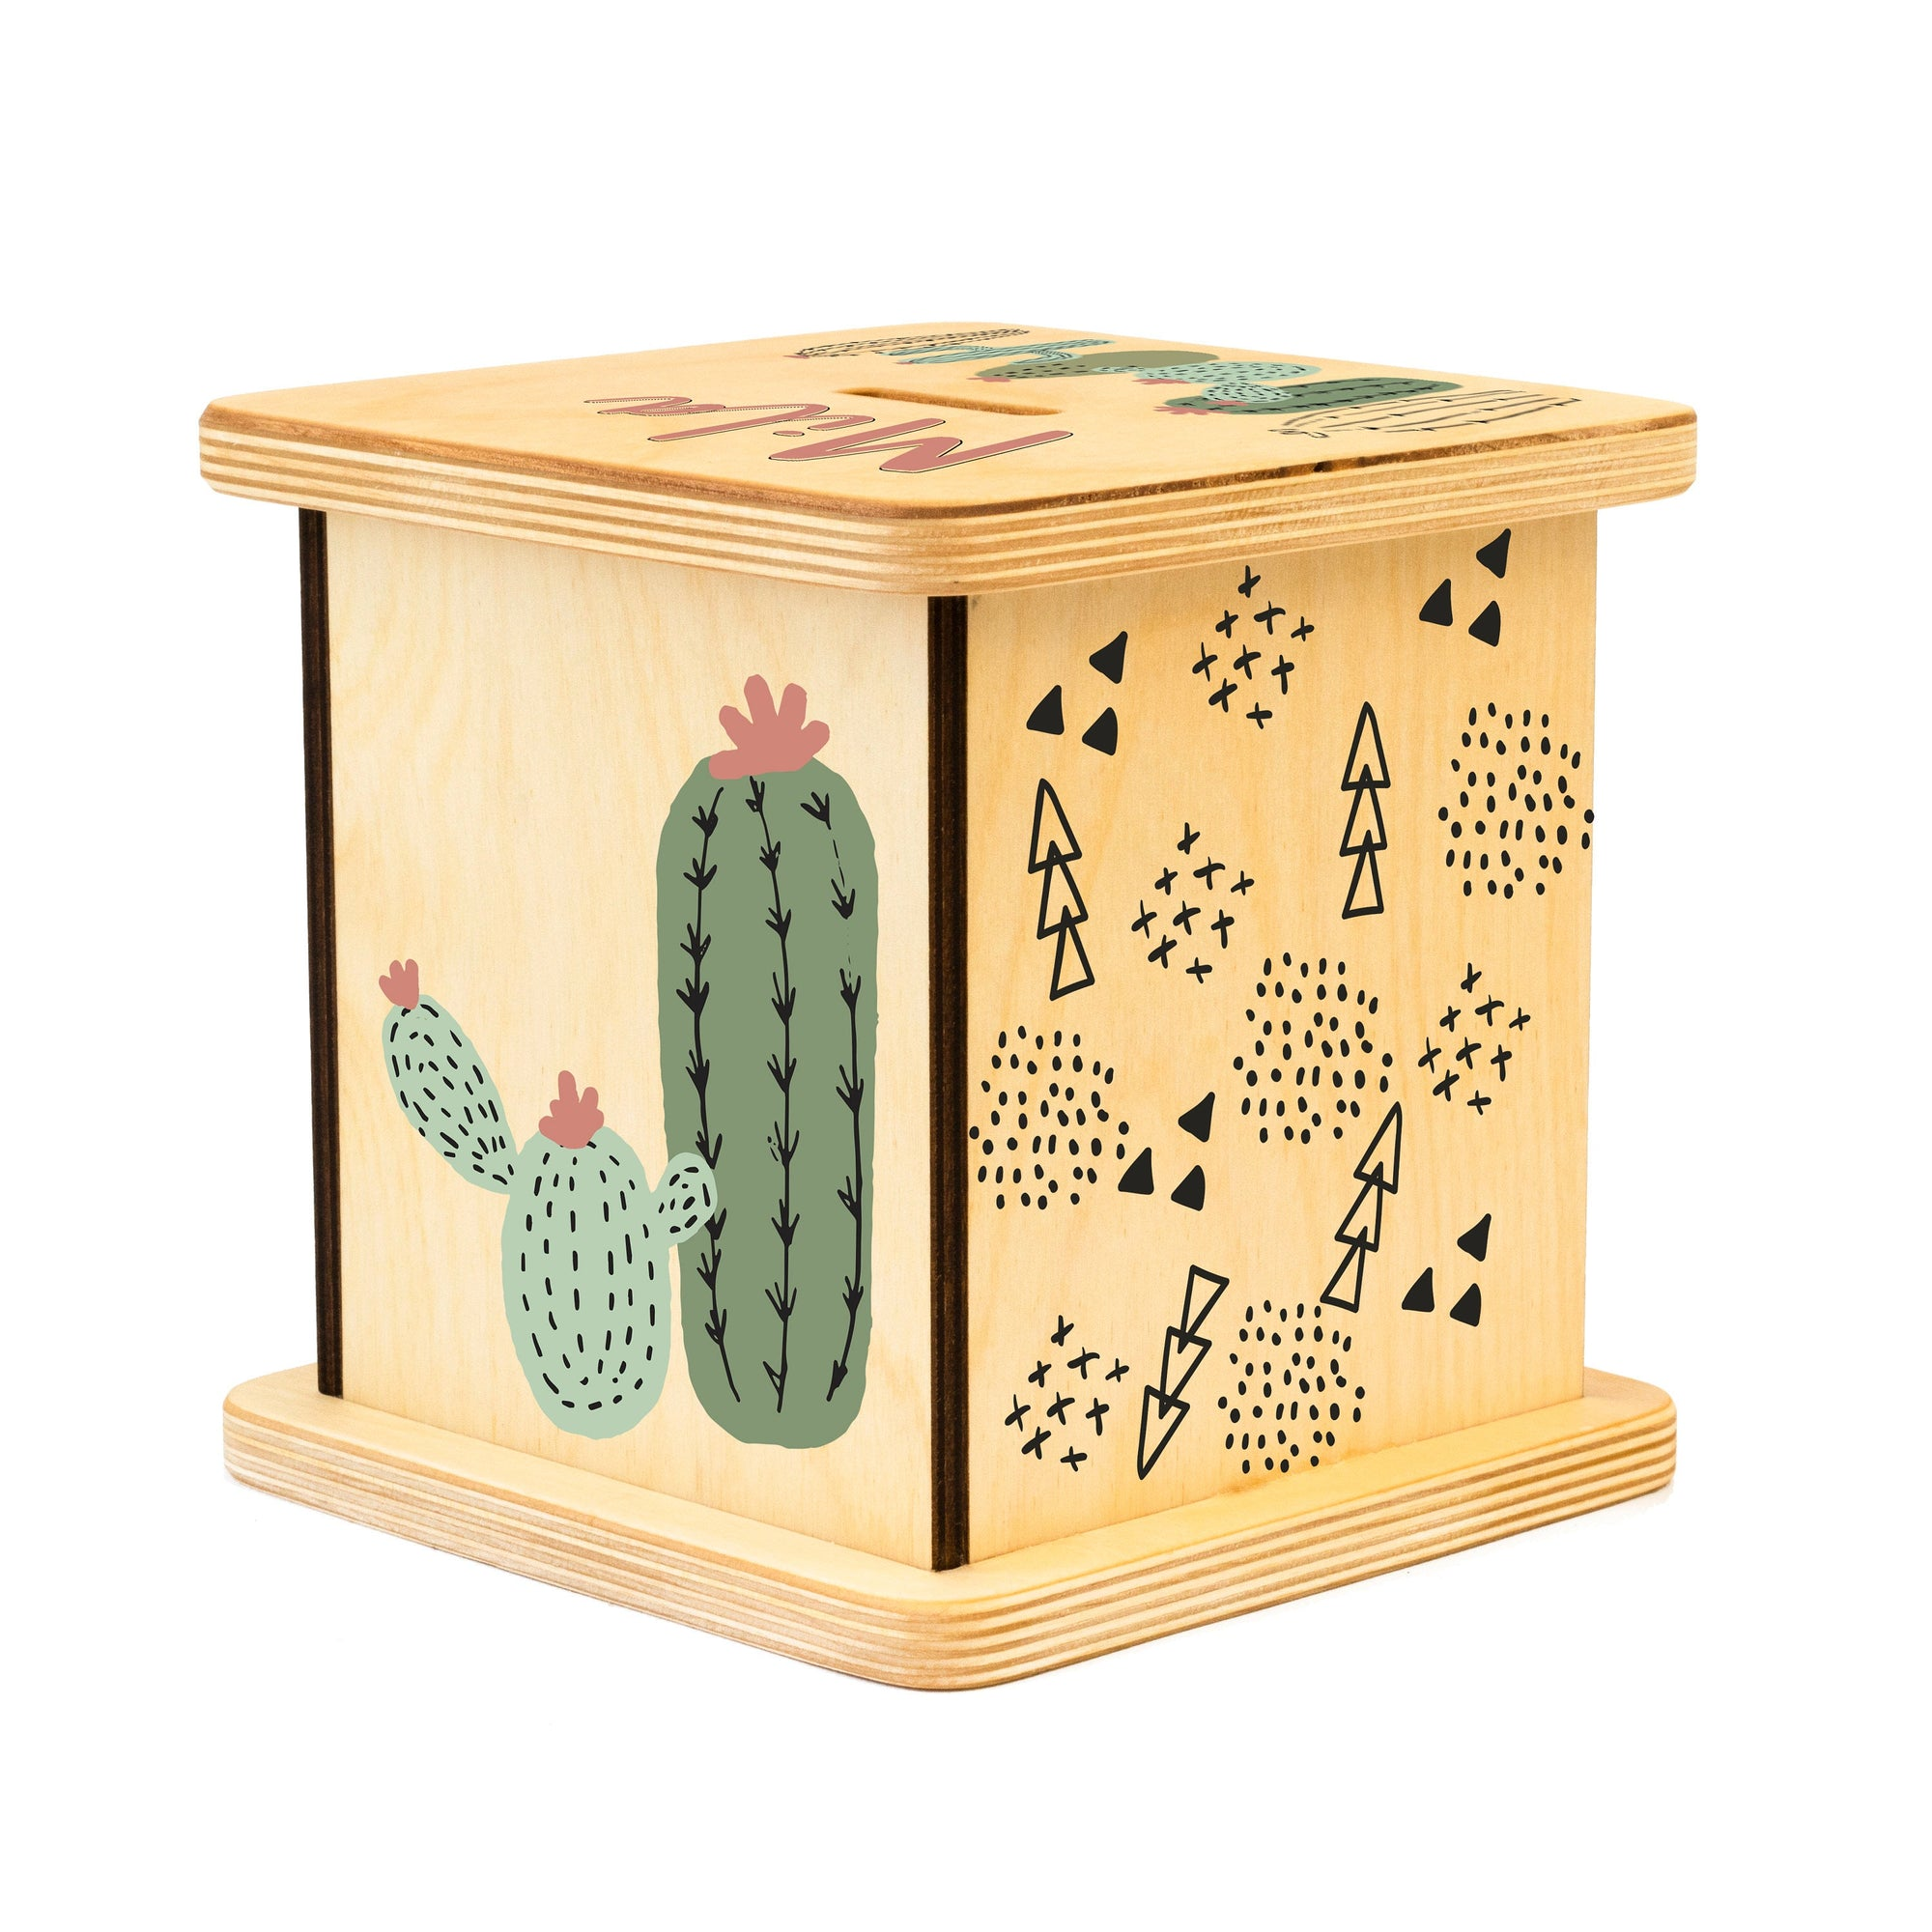 Cactus Piggy Bank, Nursery Decor, New Baby Gift, Coin Bank, Gender Neutral